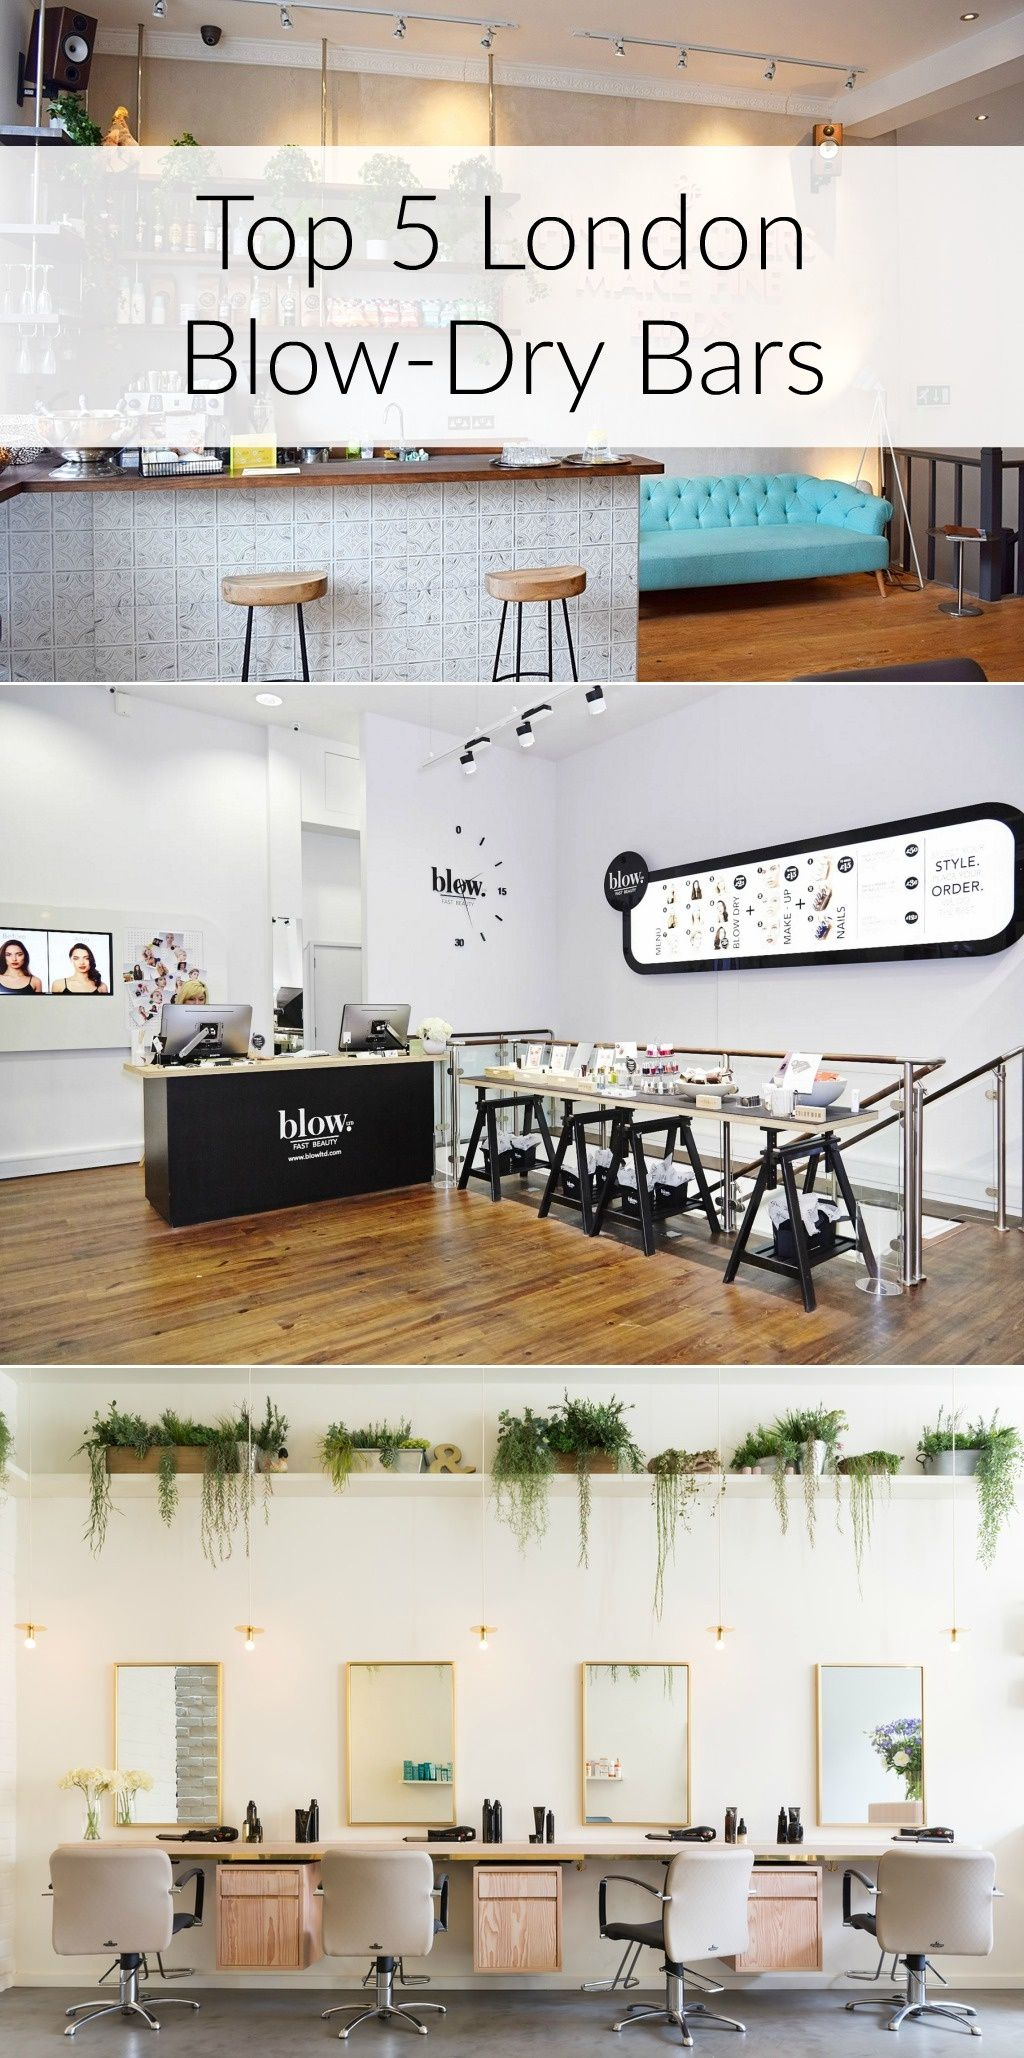 The best London blow-dry bars forecast